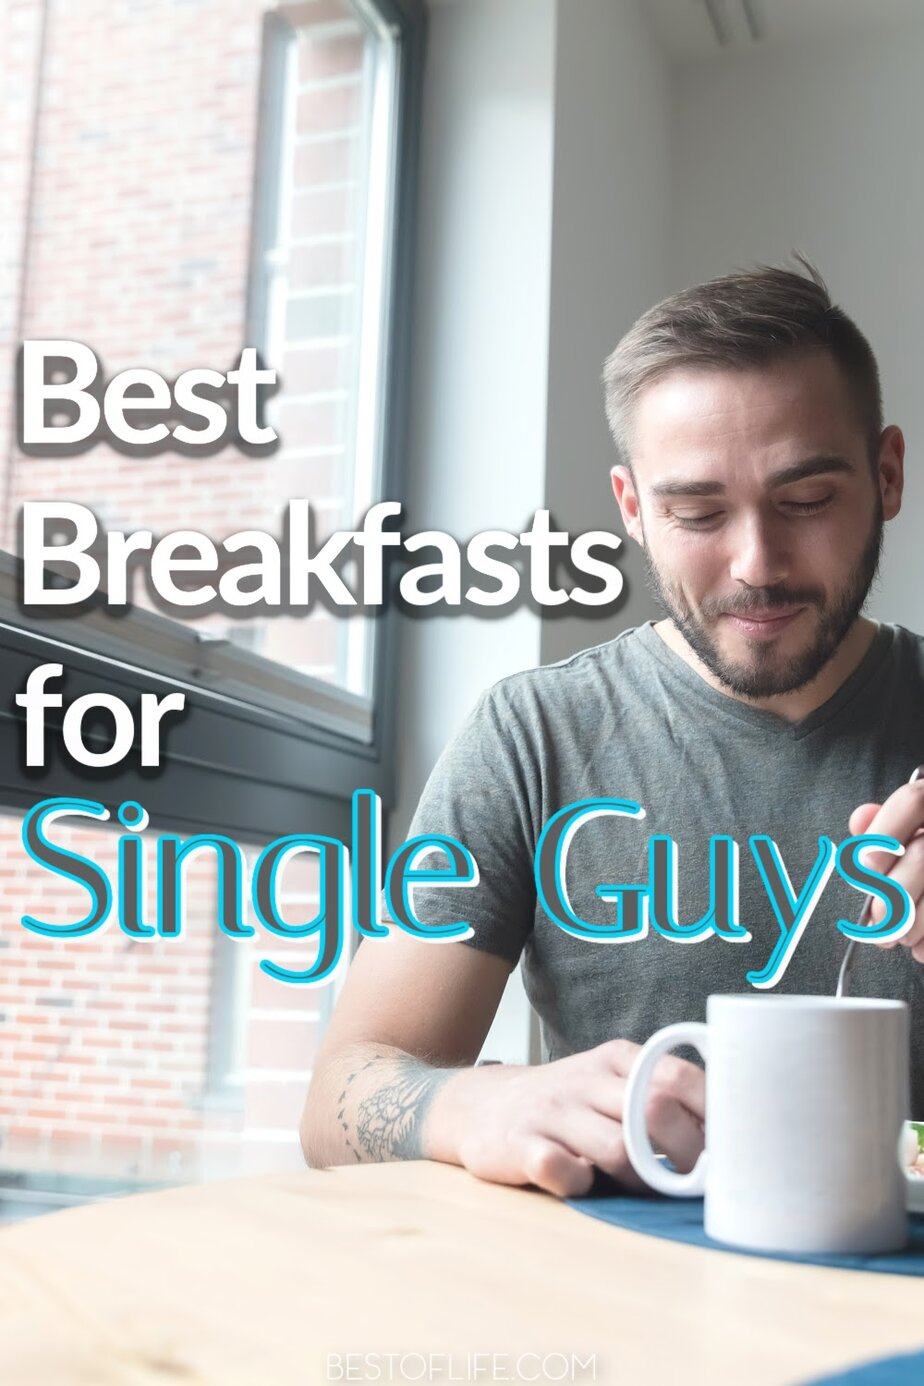 When it comes to being a single guy, breakfast is an afterthought, but that doesn't mean you can't enjoy the best breakfasts for single guys. Healthy Breakfast for Working Man | Manly Breakfast Ideas | Breakfast Ideas for Men | Breakfast Recipes for Men | Tasty Breakfast Ideas | Fitness Breakfast | Healthy Breakfast Ideas | Breakfast Recipes for Guys #breakfast #manly via @thebestoflife